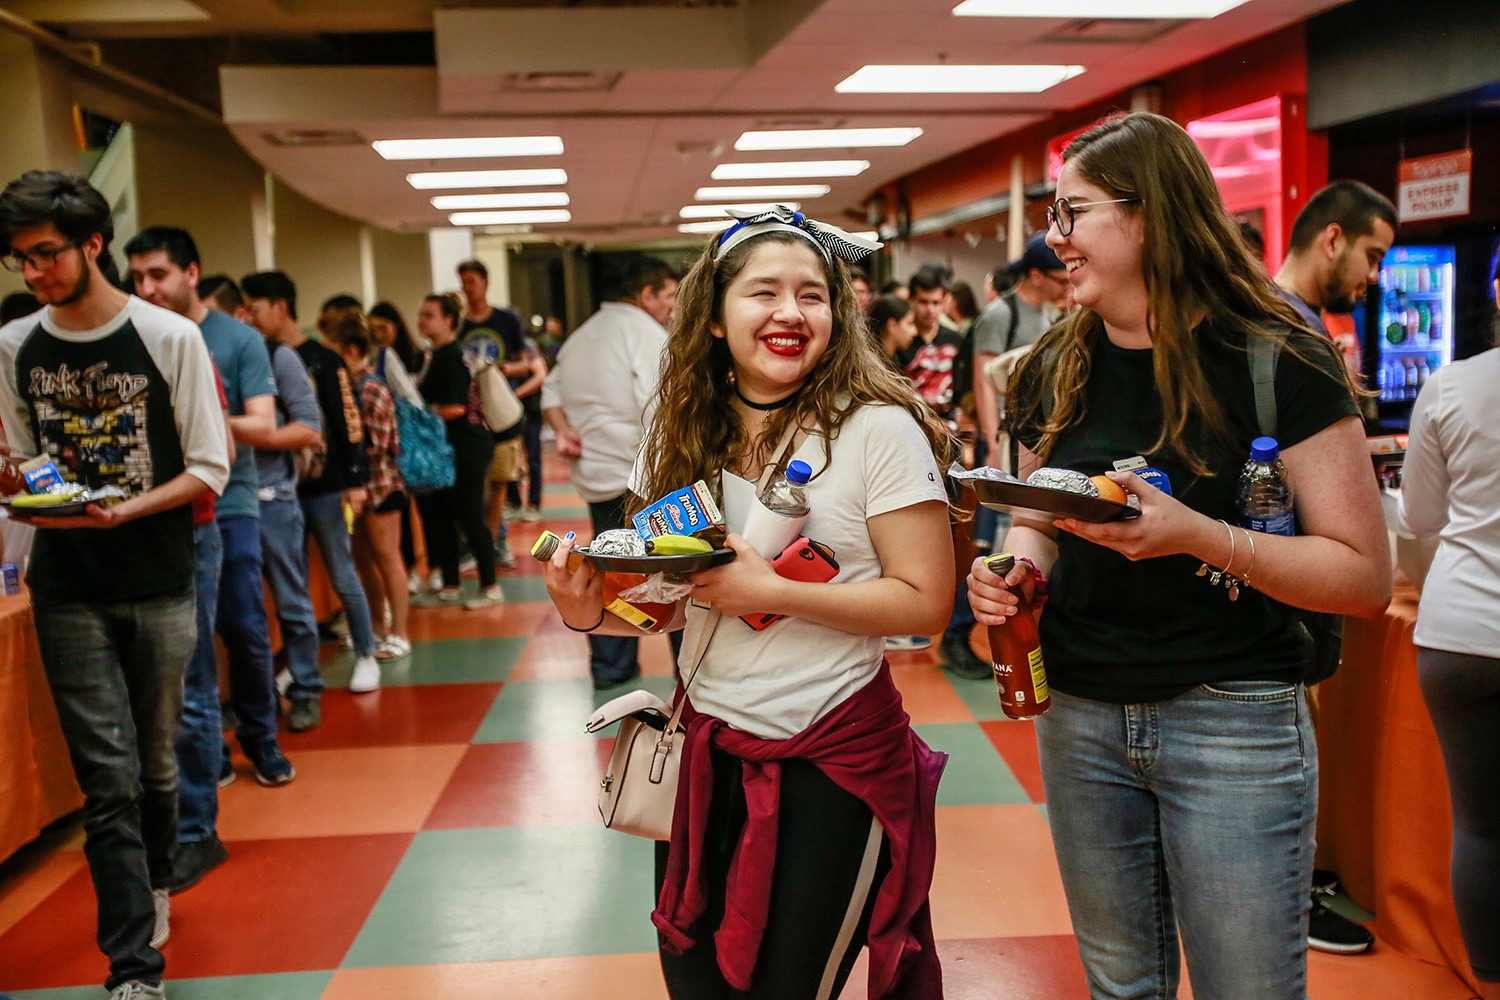 UTEP students took a break from studying for an evening filled with games, dancing, delicious food and great company during Up All Night on Tuesday, May 14.